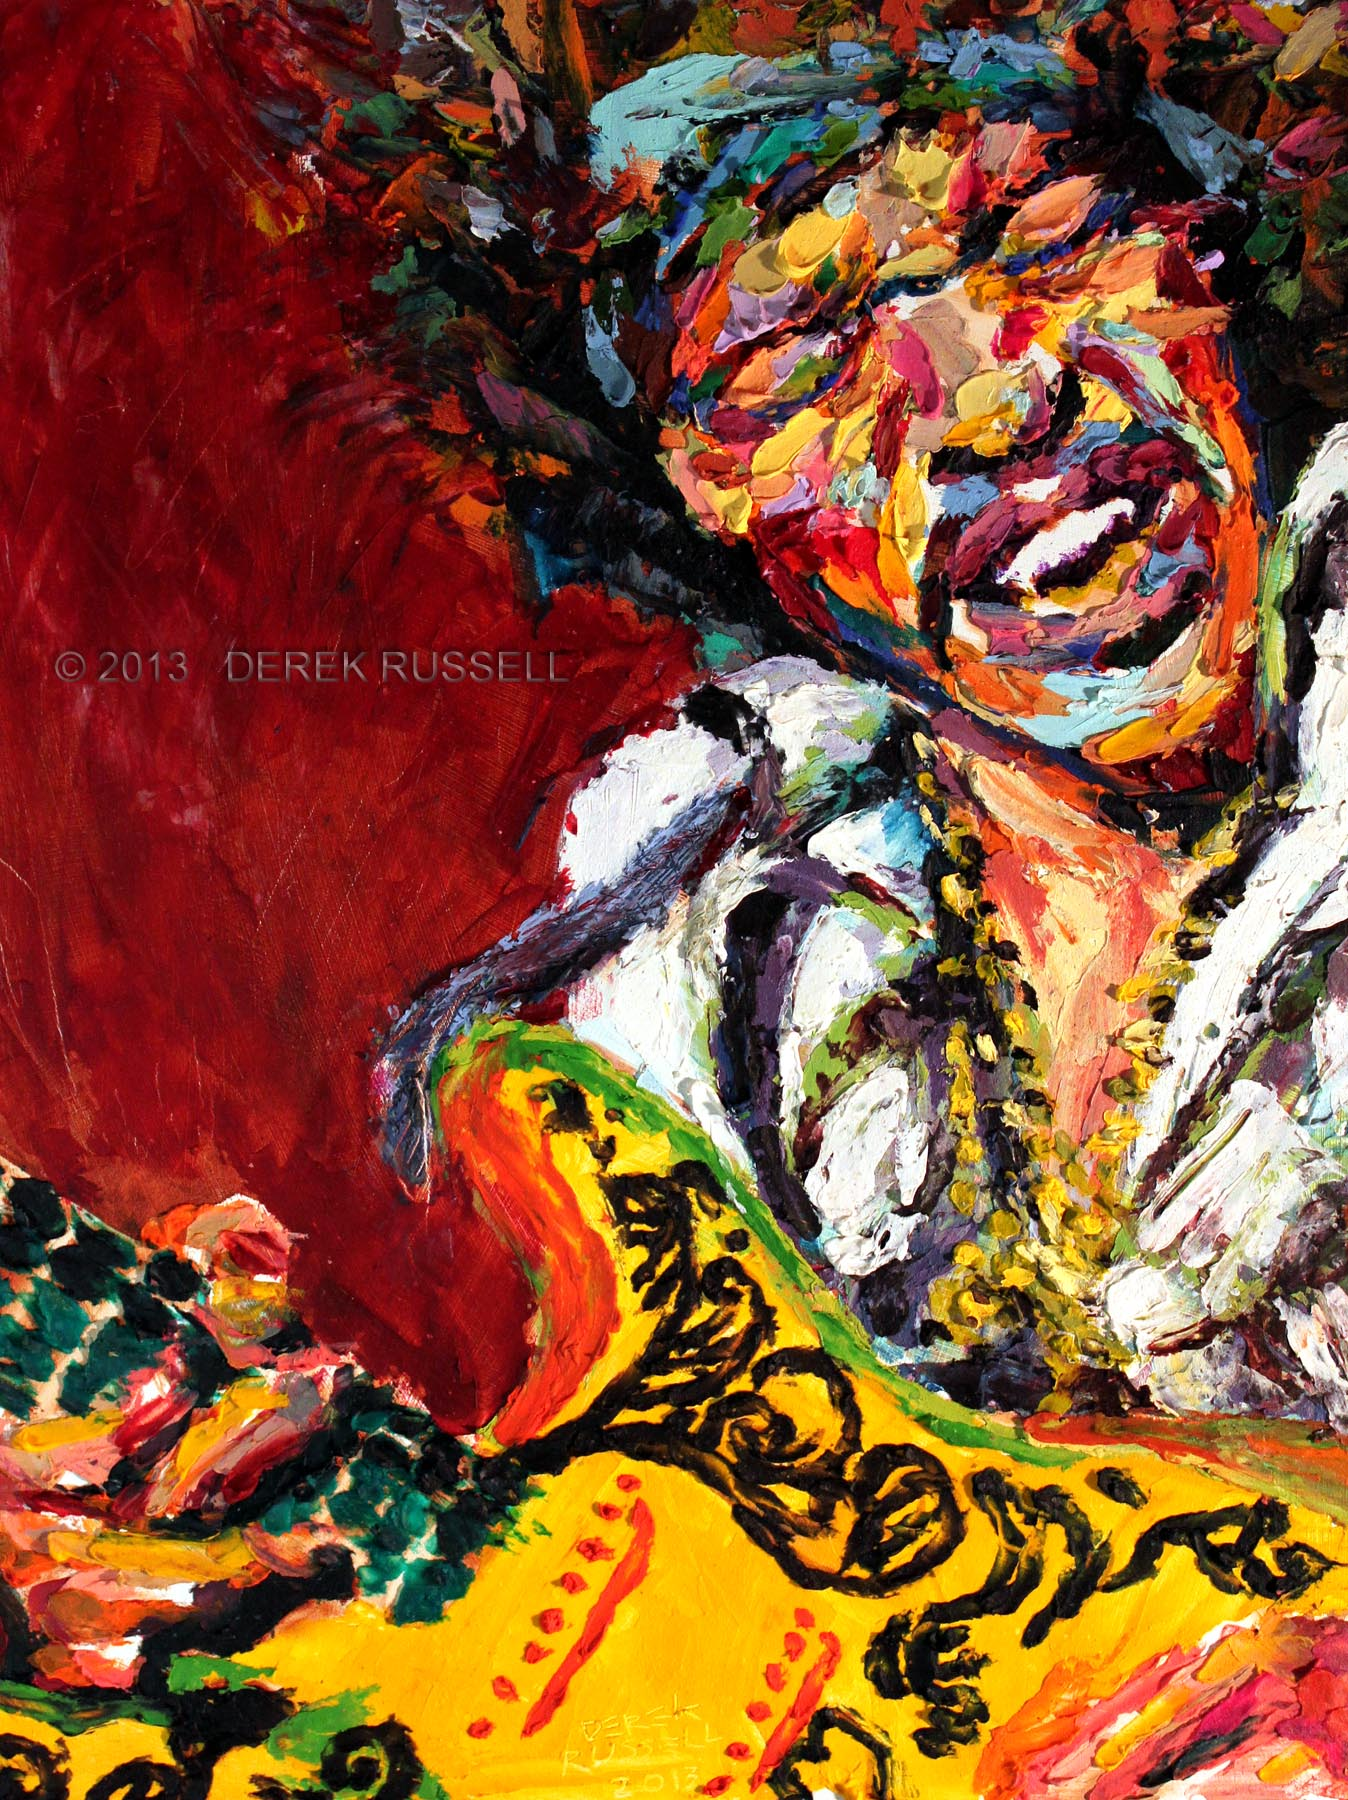 Jimi Hendrix Original Oil and Acrylic Portrait Painting by Artist Derek Russell